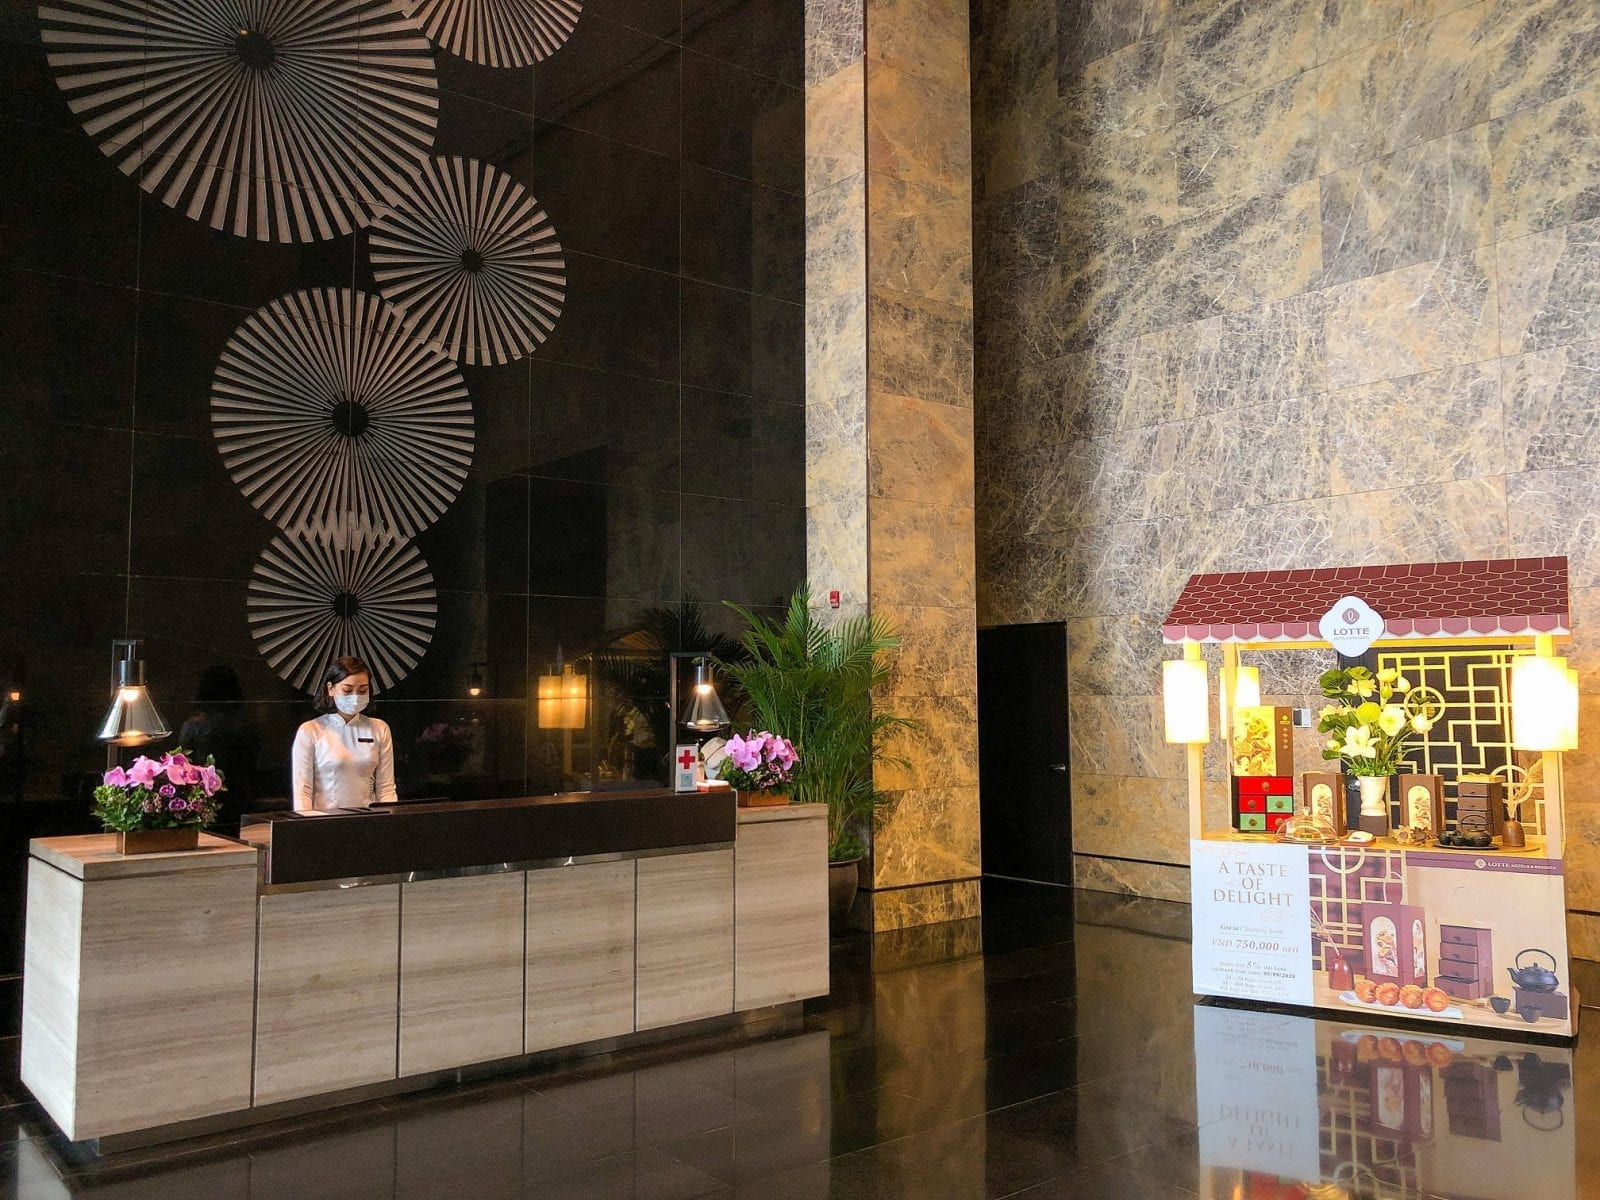 Image of the reception desk at the Lotte Hotel Hanoi in Vietnam